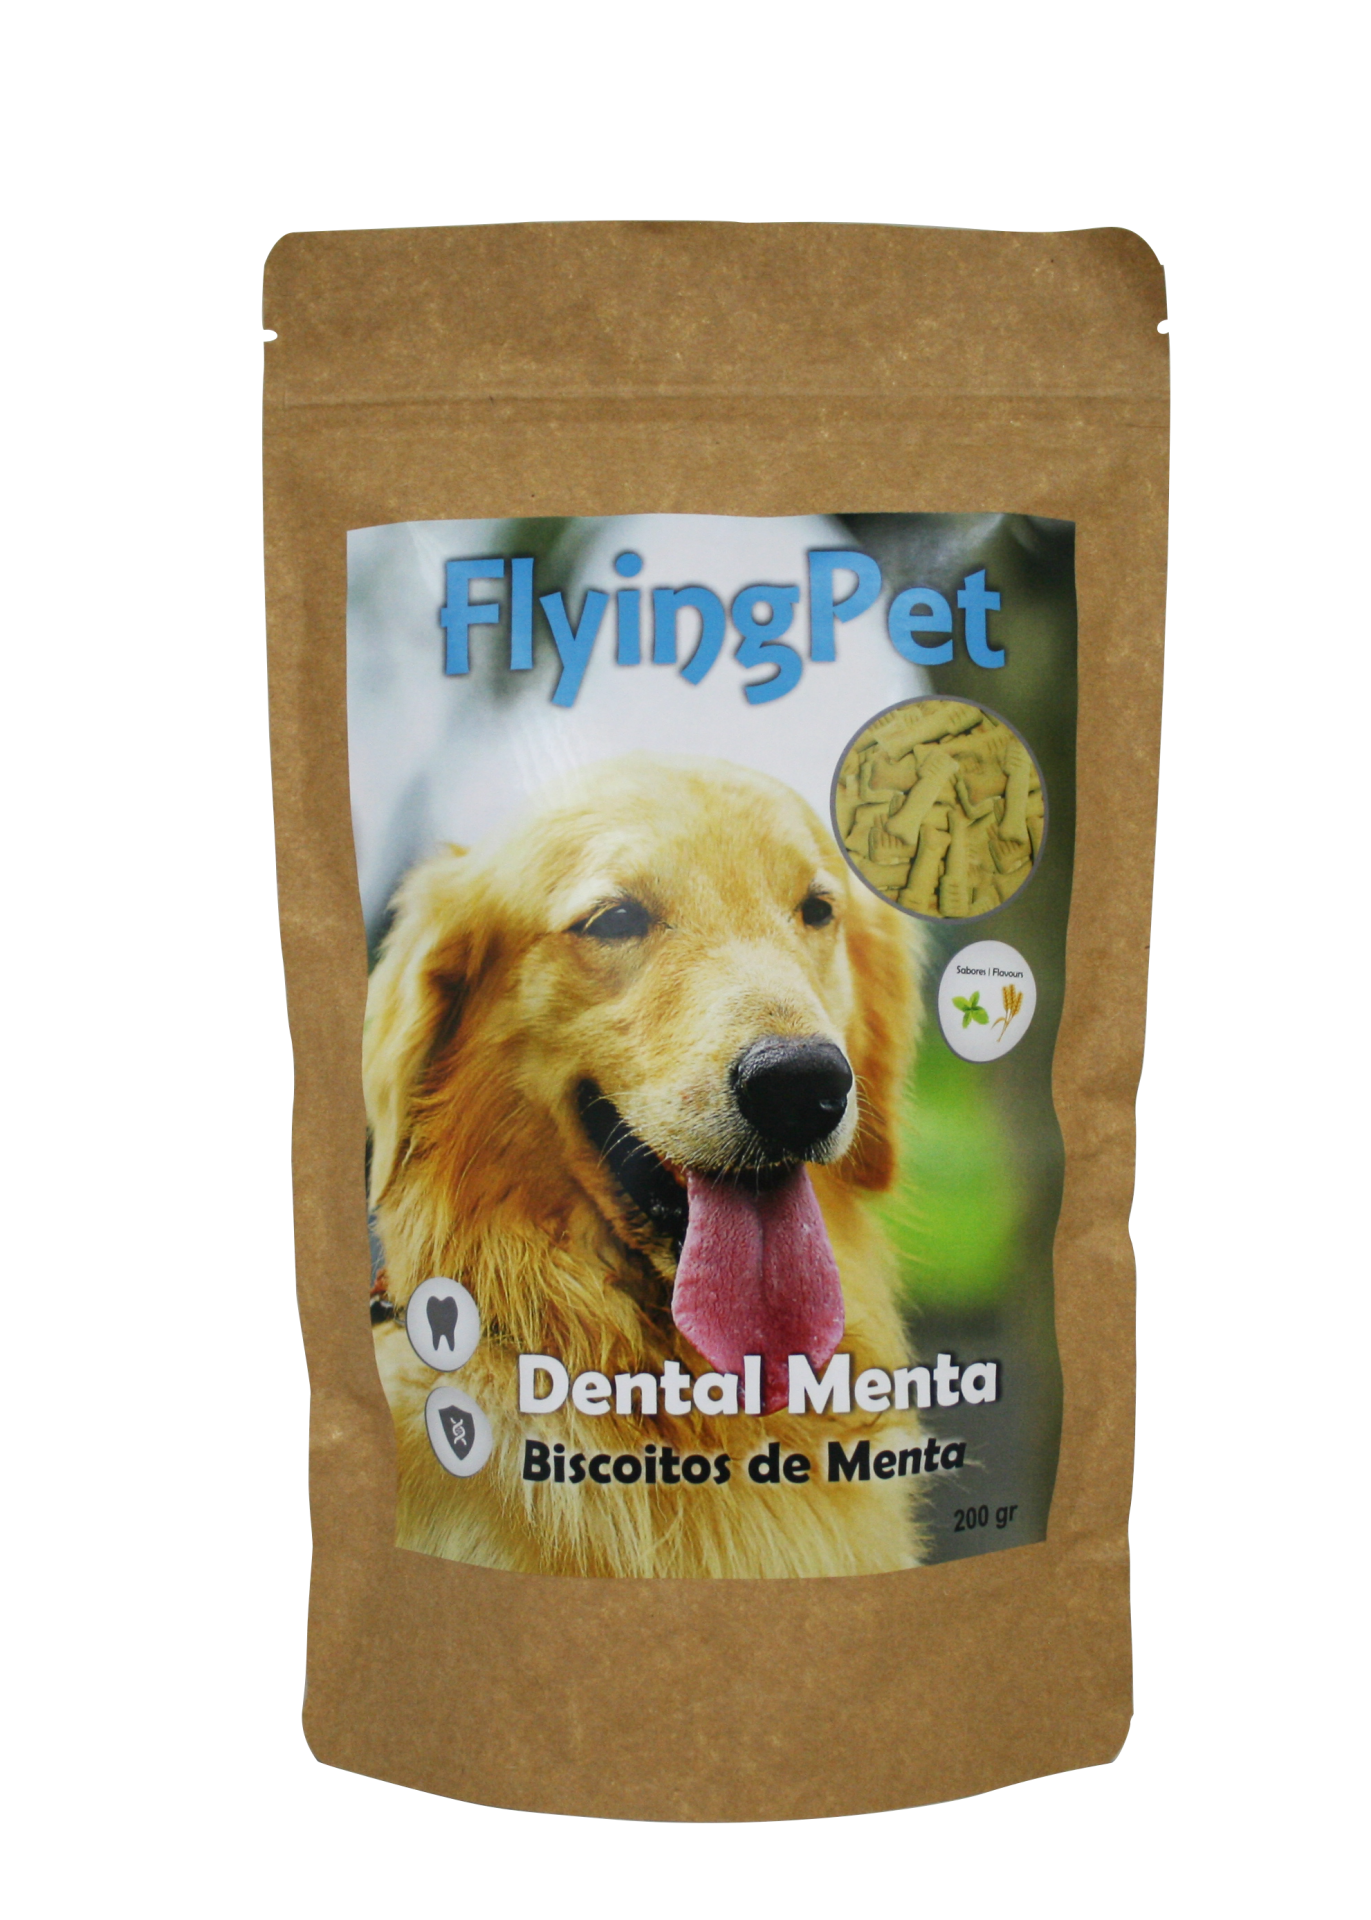 Biscoitos de Menta - Dental Mint (200 g)